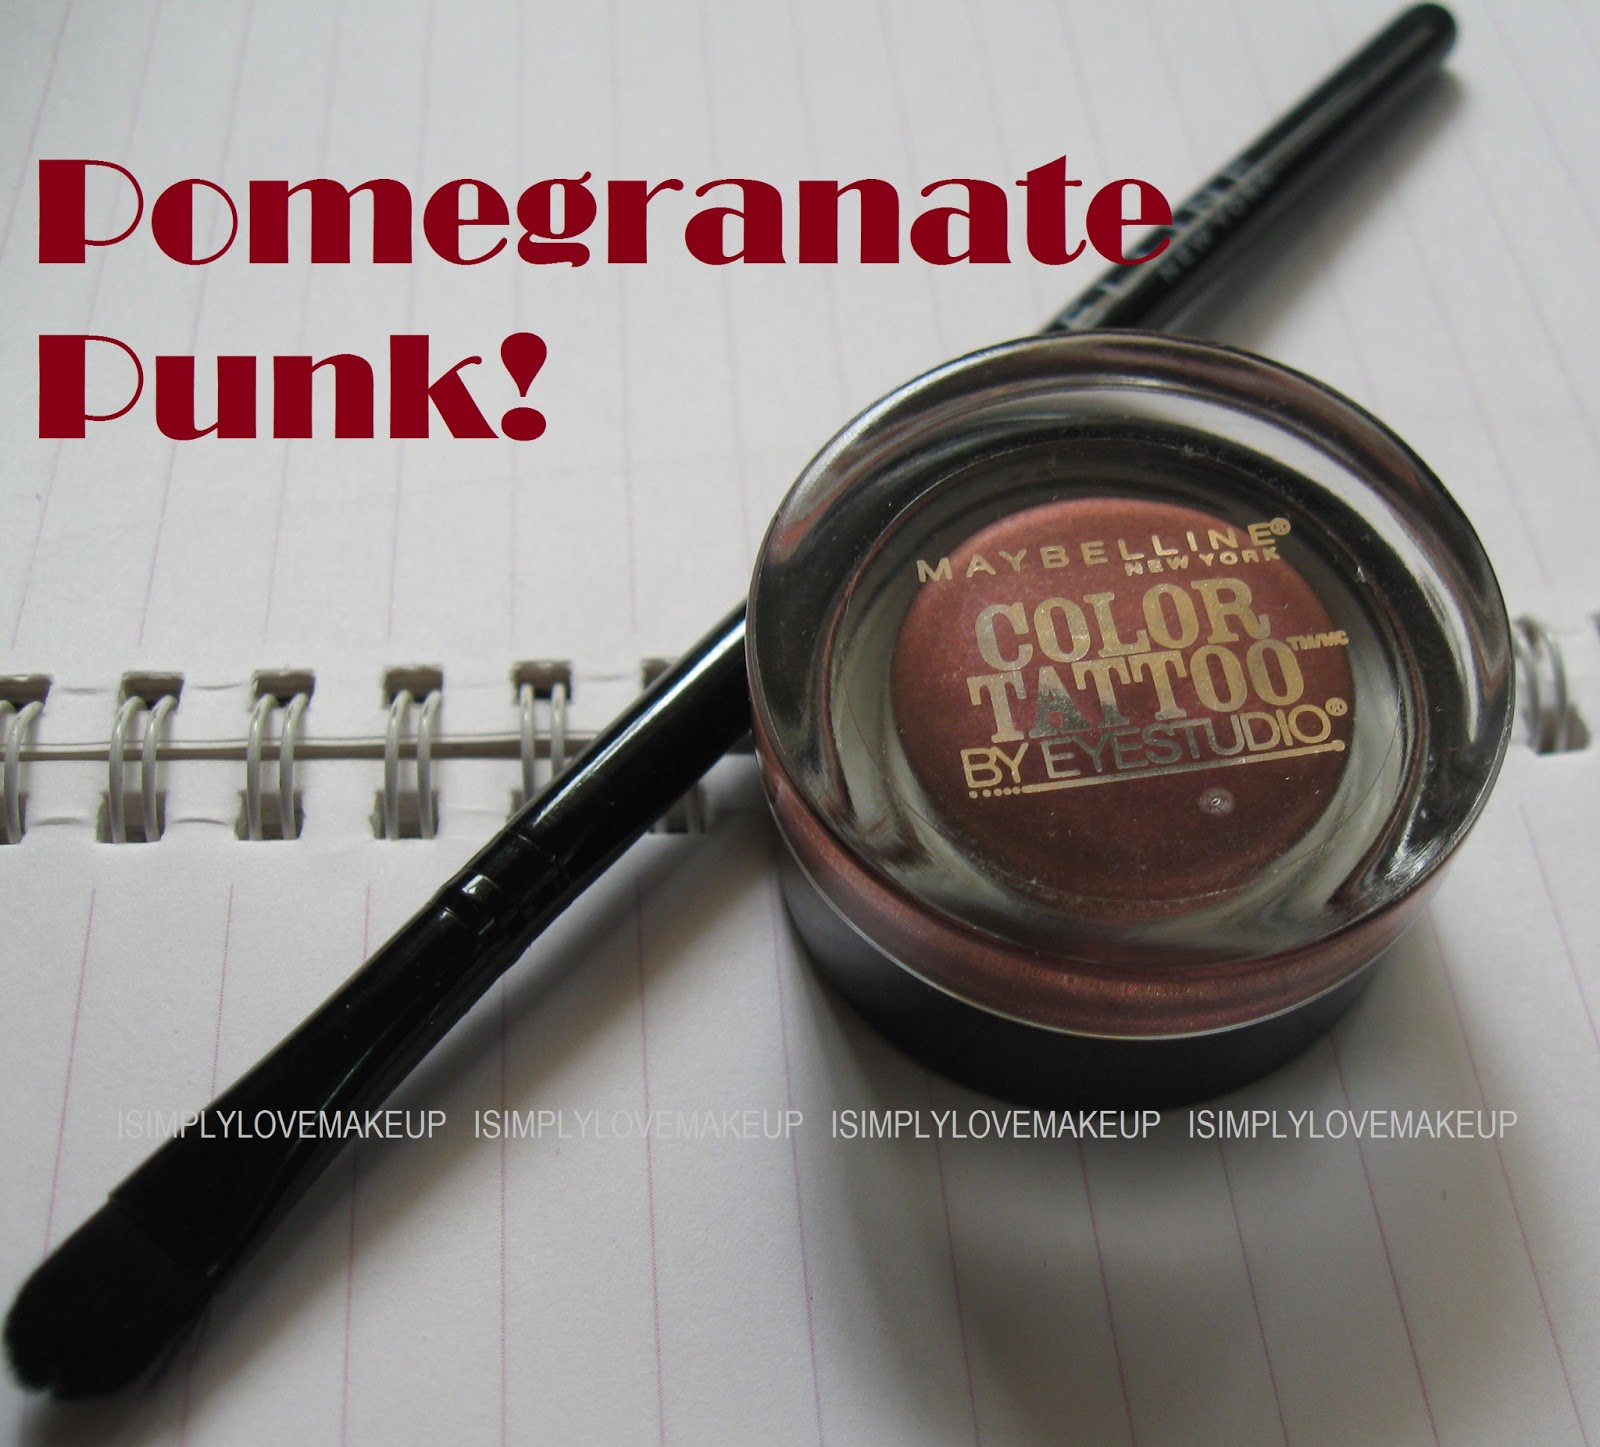 Maybelline Eye Color Tattoo in Pomegranate Punk